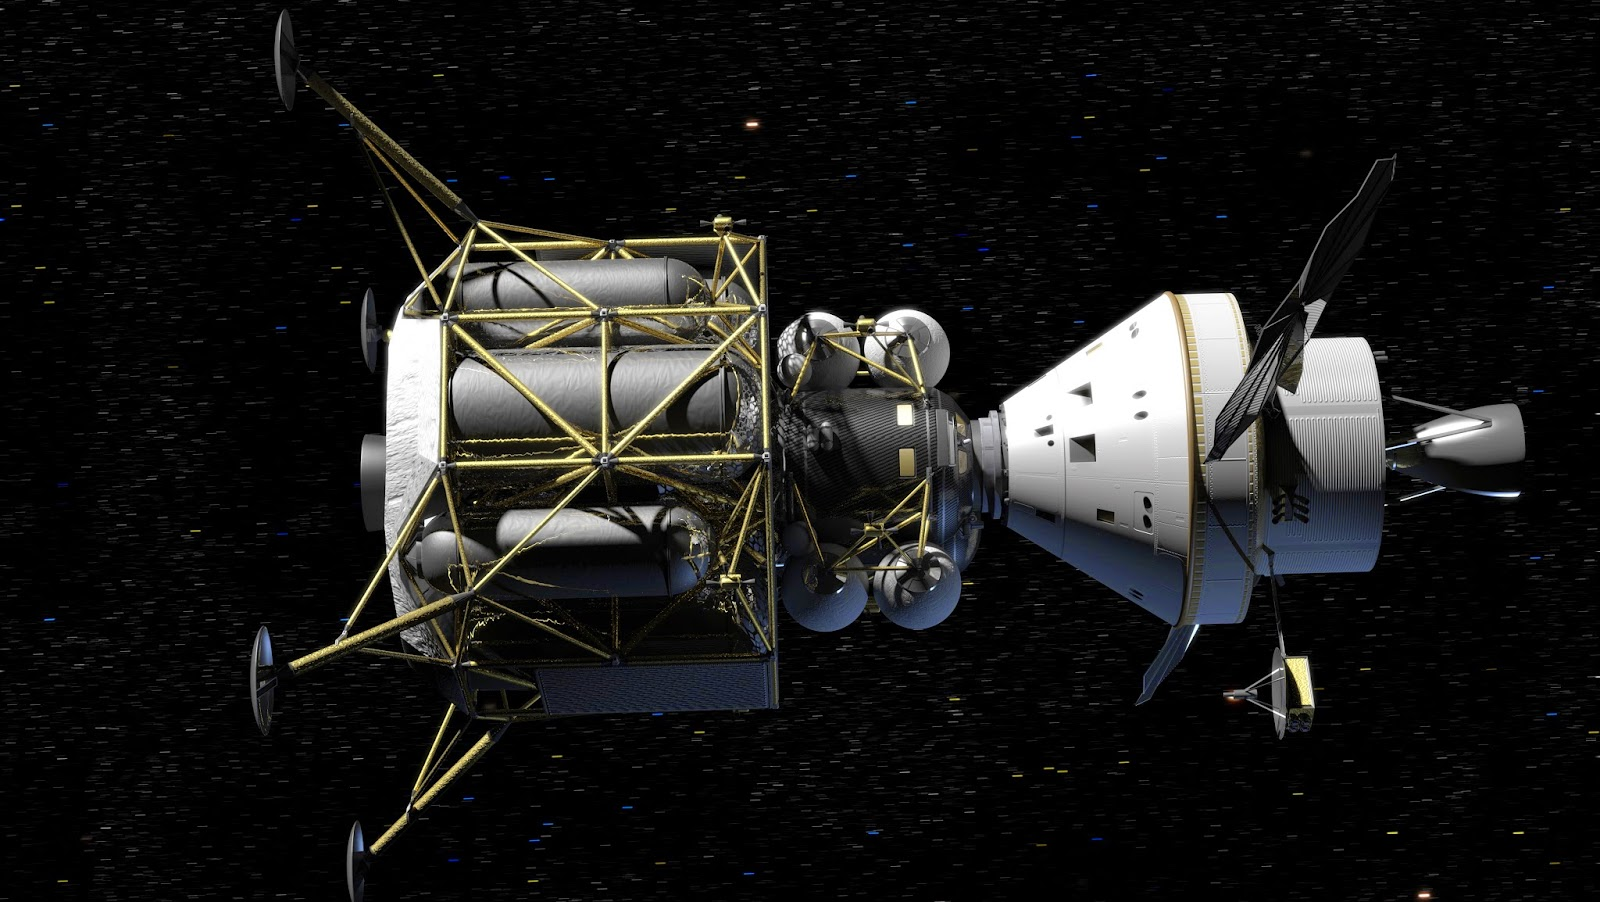 orion spacecraft - photo #11